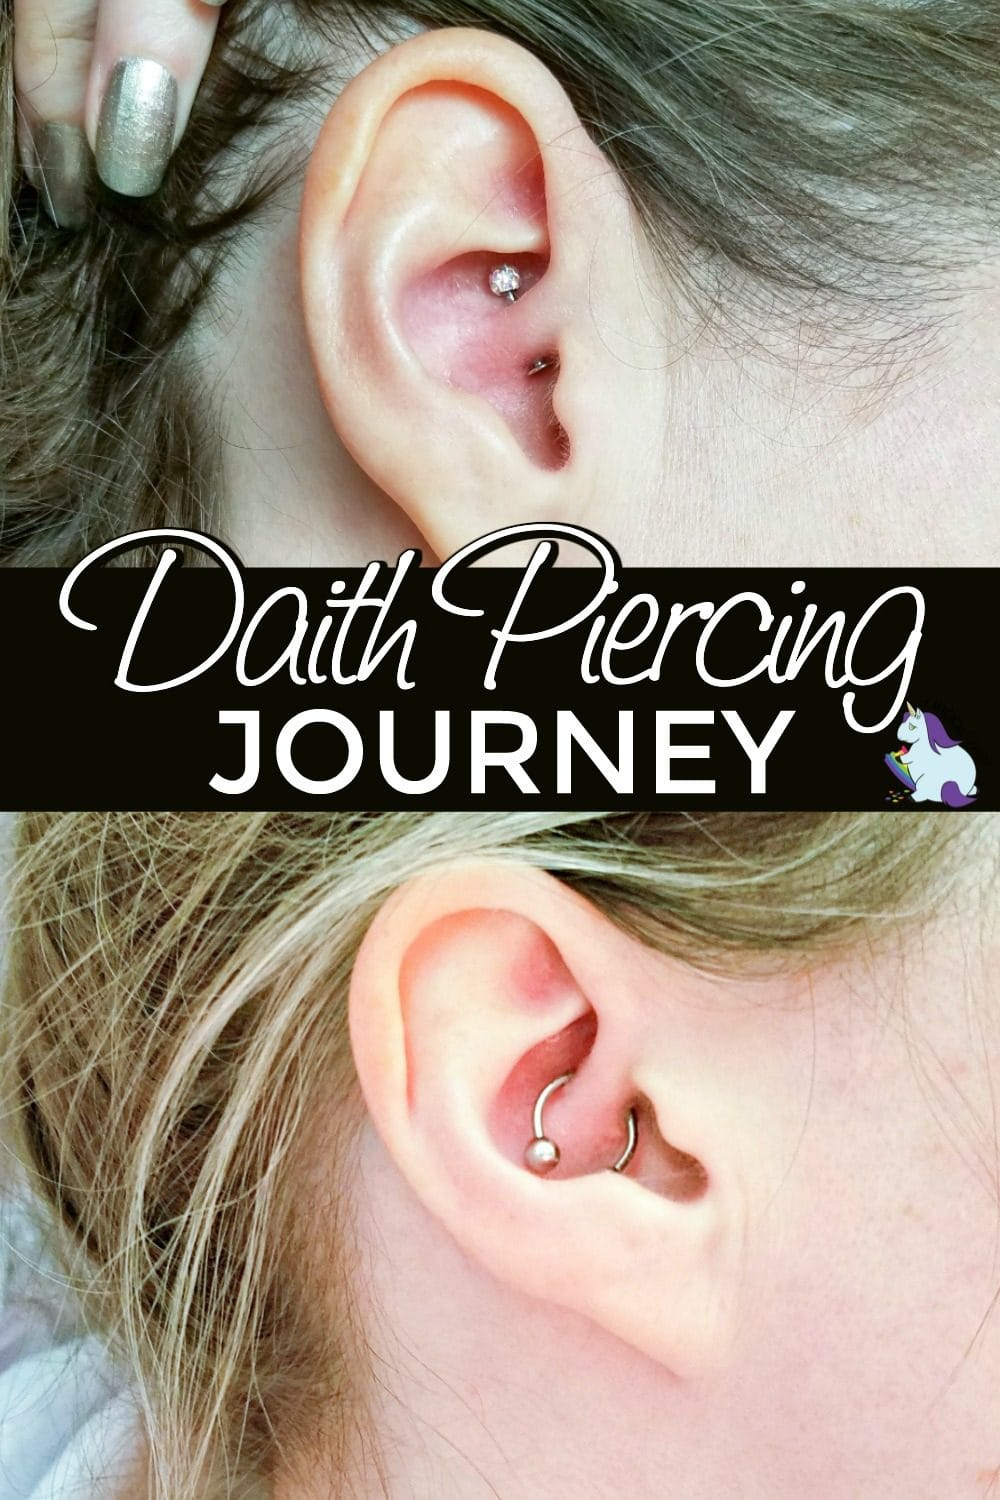 Ears with a daith earring in them.